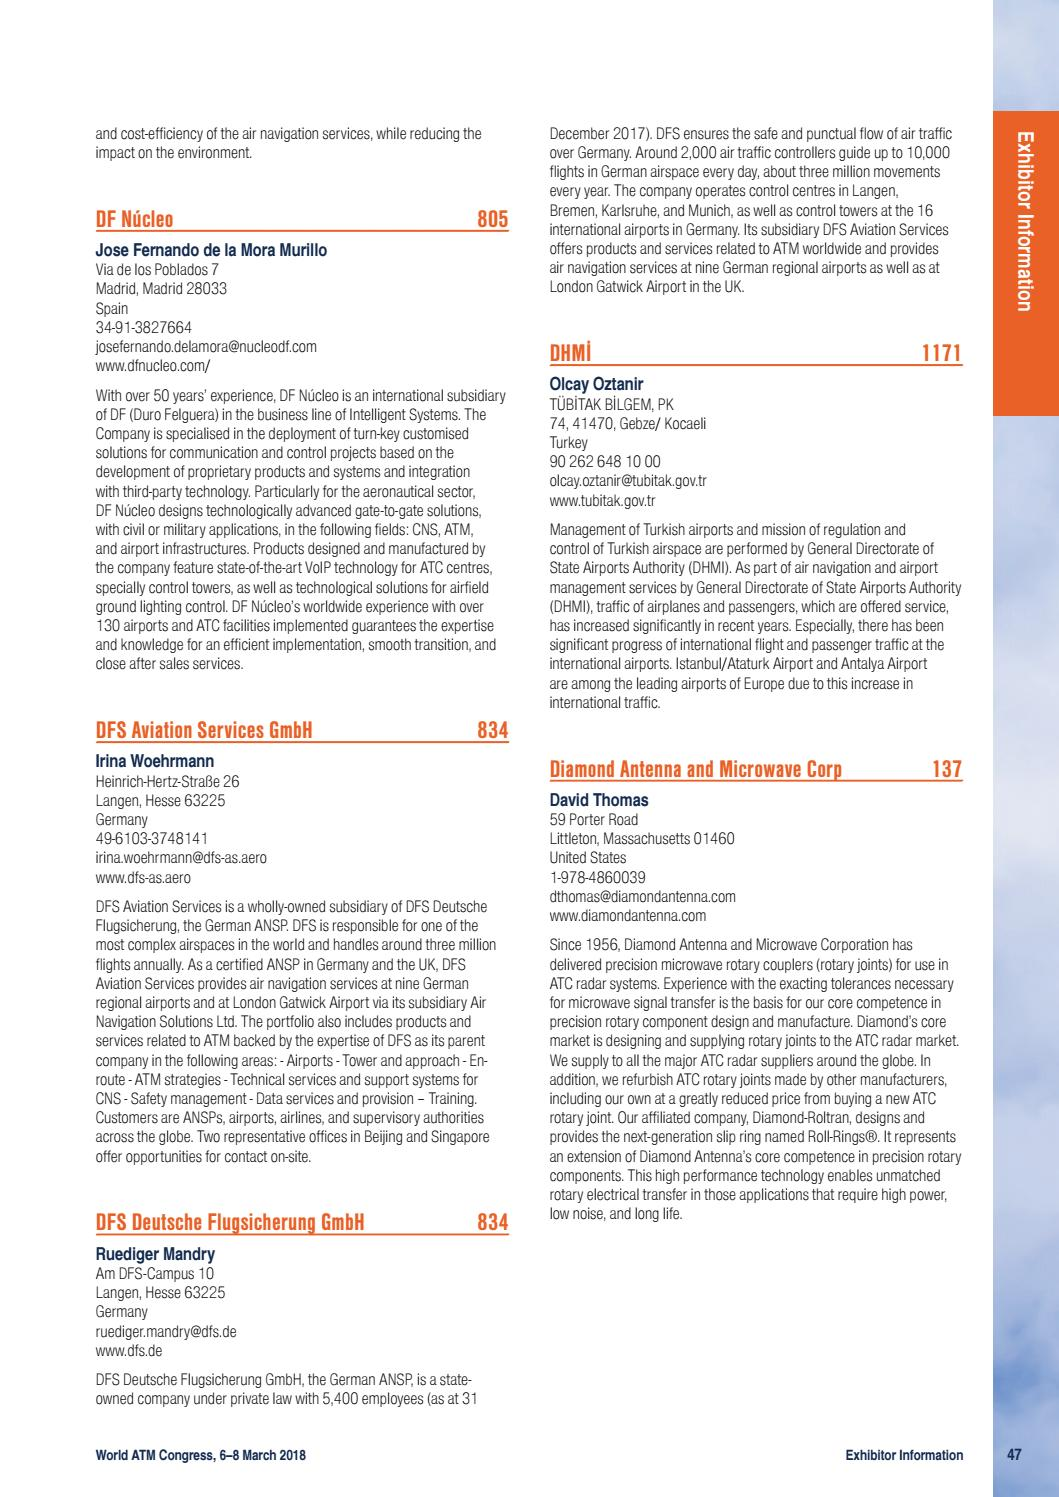 World ATM Congress Guide 2018 by World ATM Congress - issuu